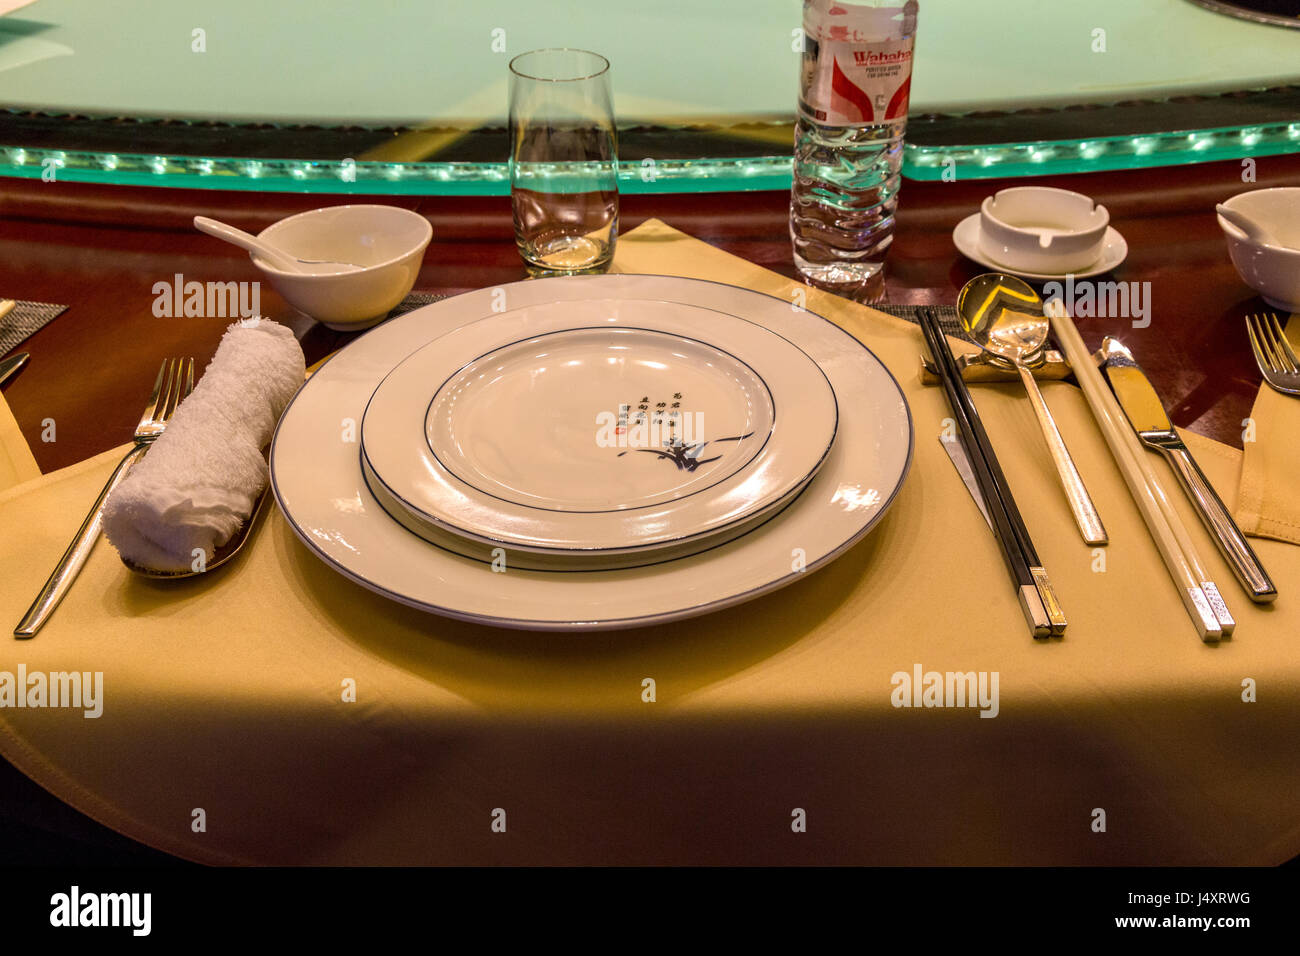 Chinese table setting - Chinese Table Place Setting With Chopsticks Lazy Susan Rotating Serving Table In Background